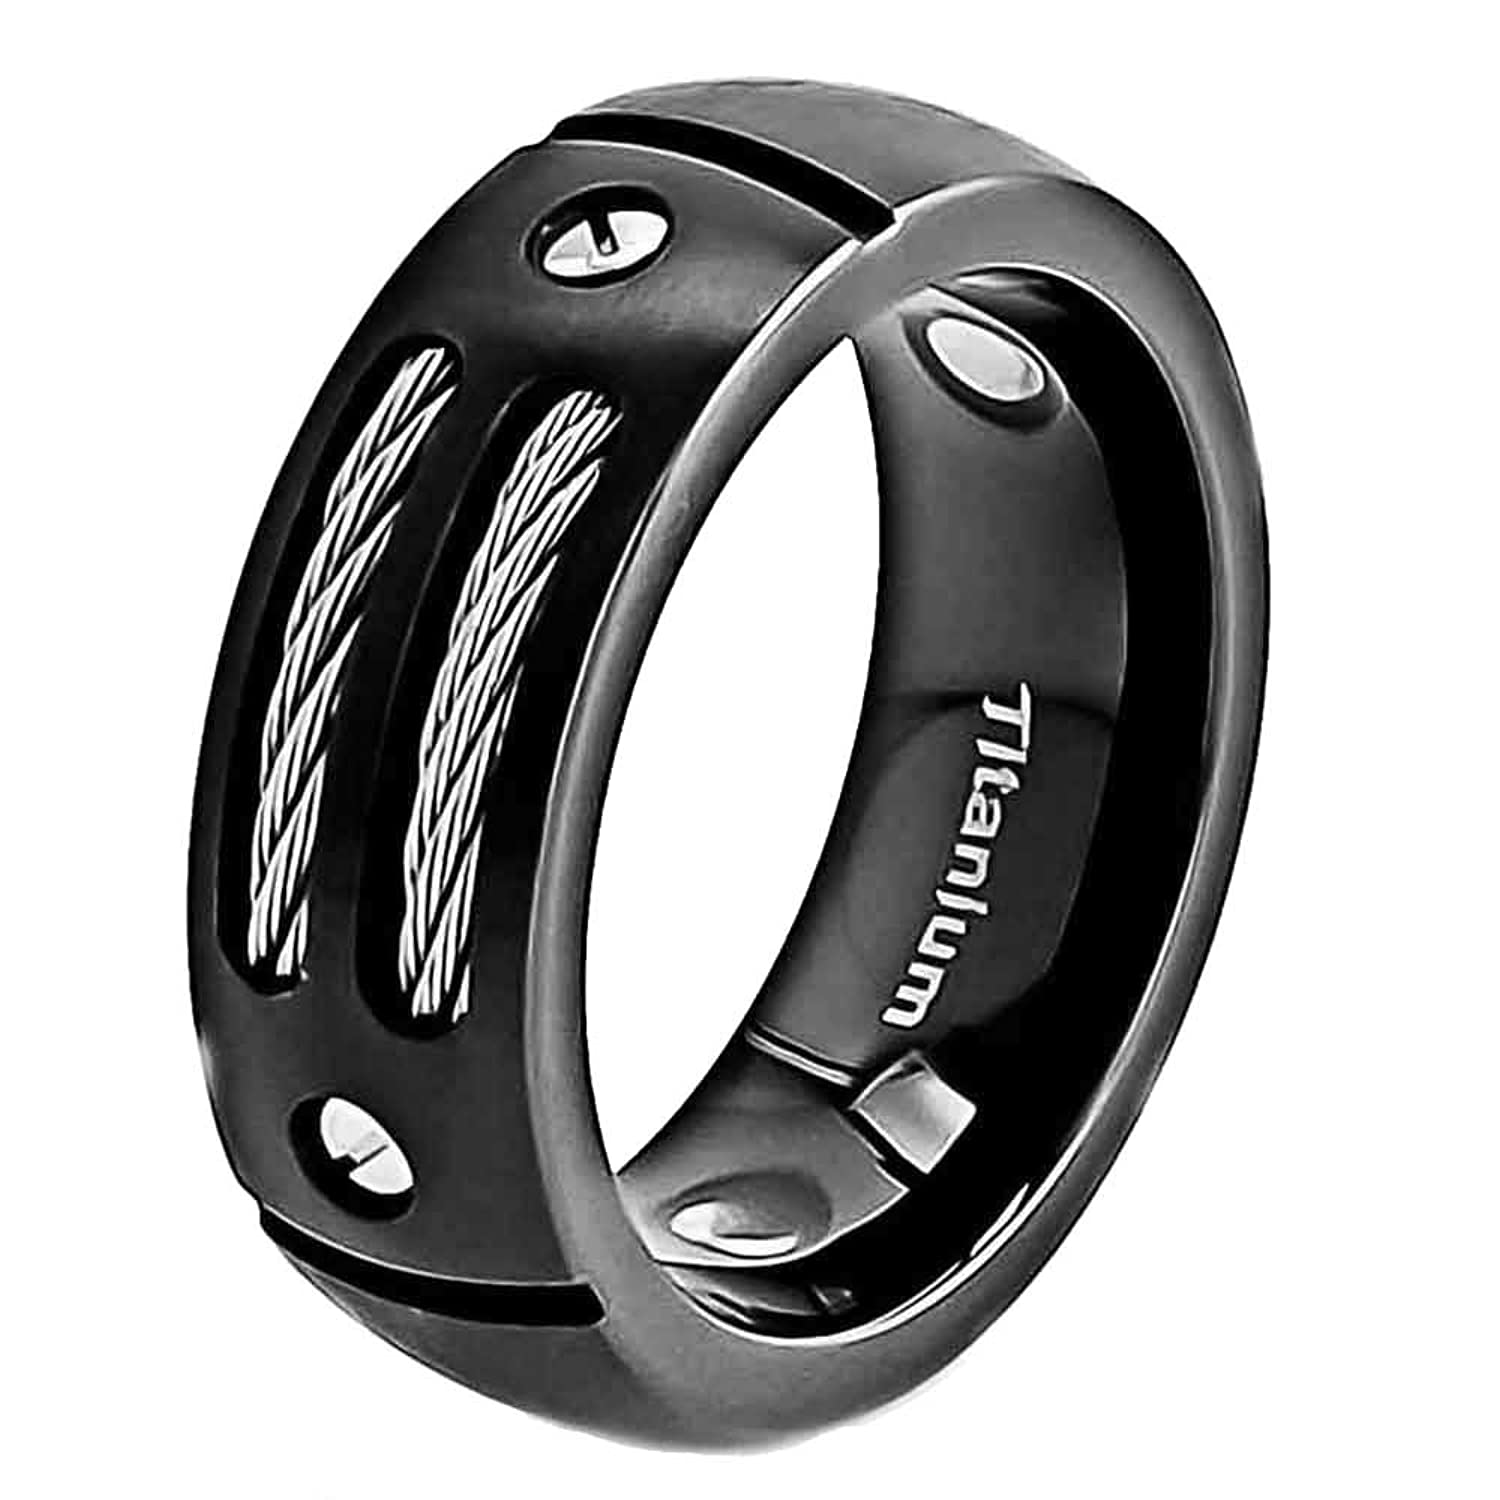 8mm Men Black Silver Titanium Wedding Band With Stainless Steel Cables And Screw Design Size 7 14 SPJ